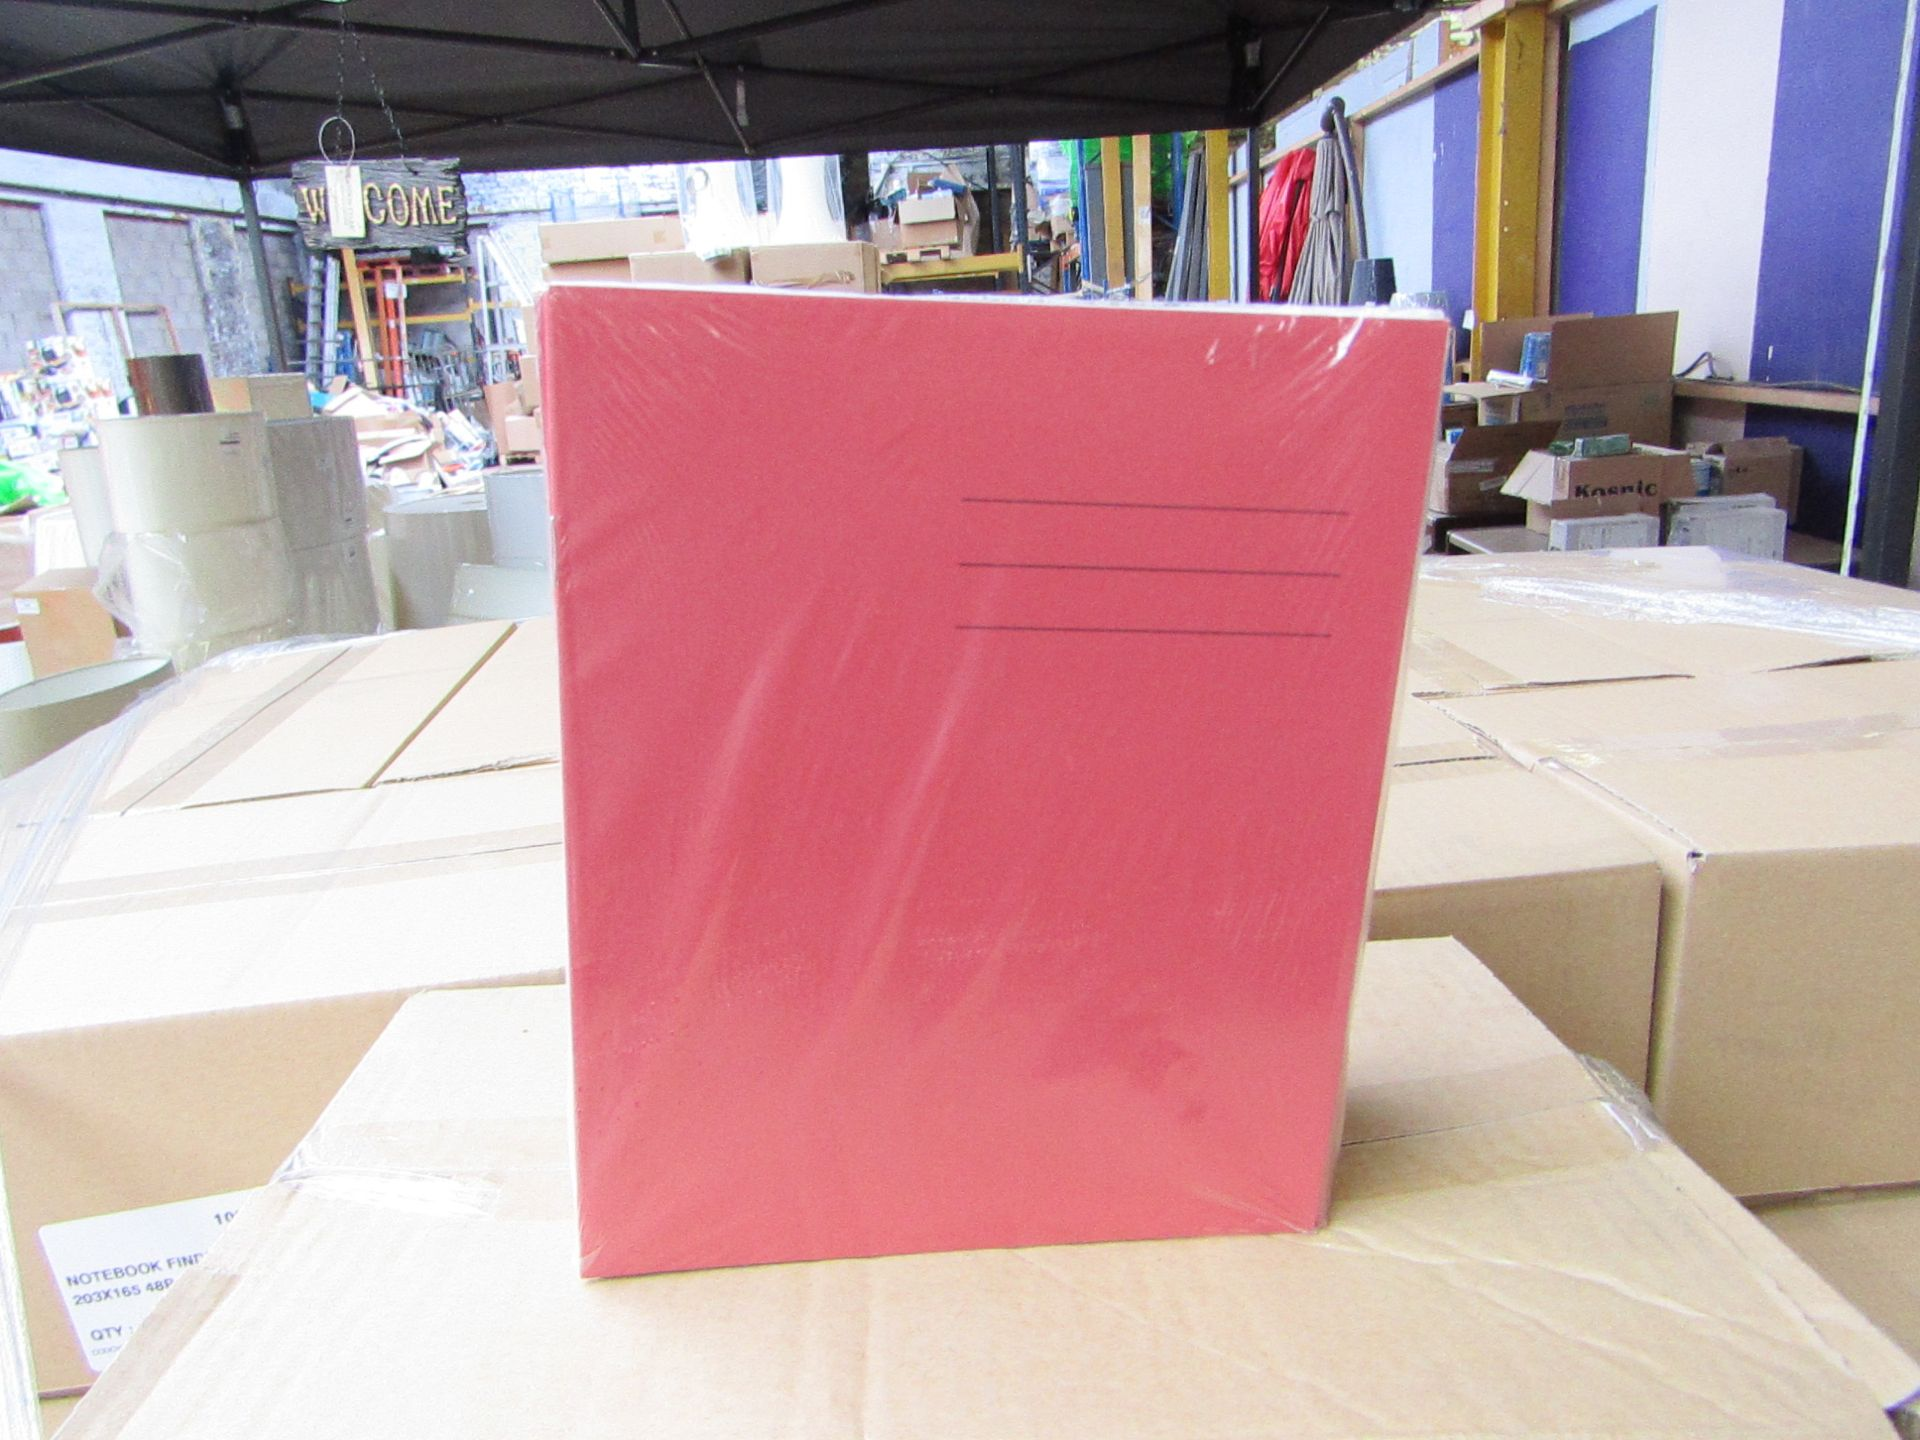 Lot 9 - Box of approx 100 Exercise books, please note these are picked from a mixed pallet and colours may